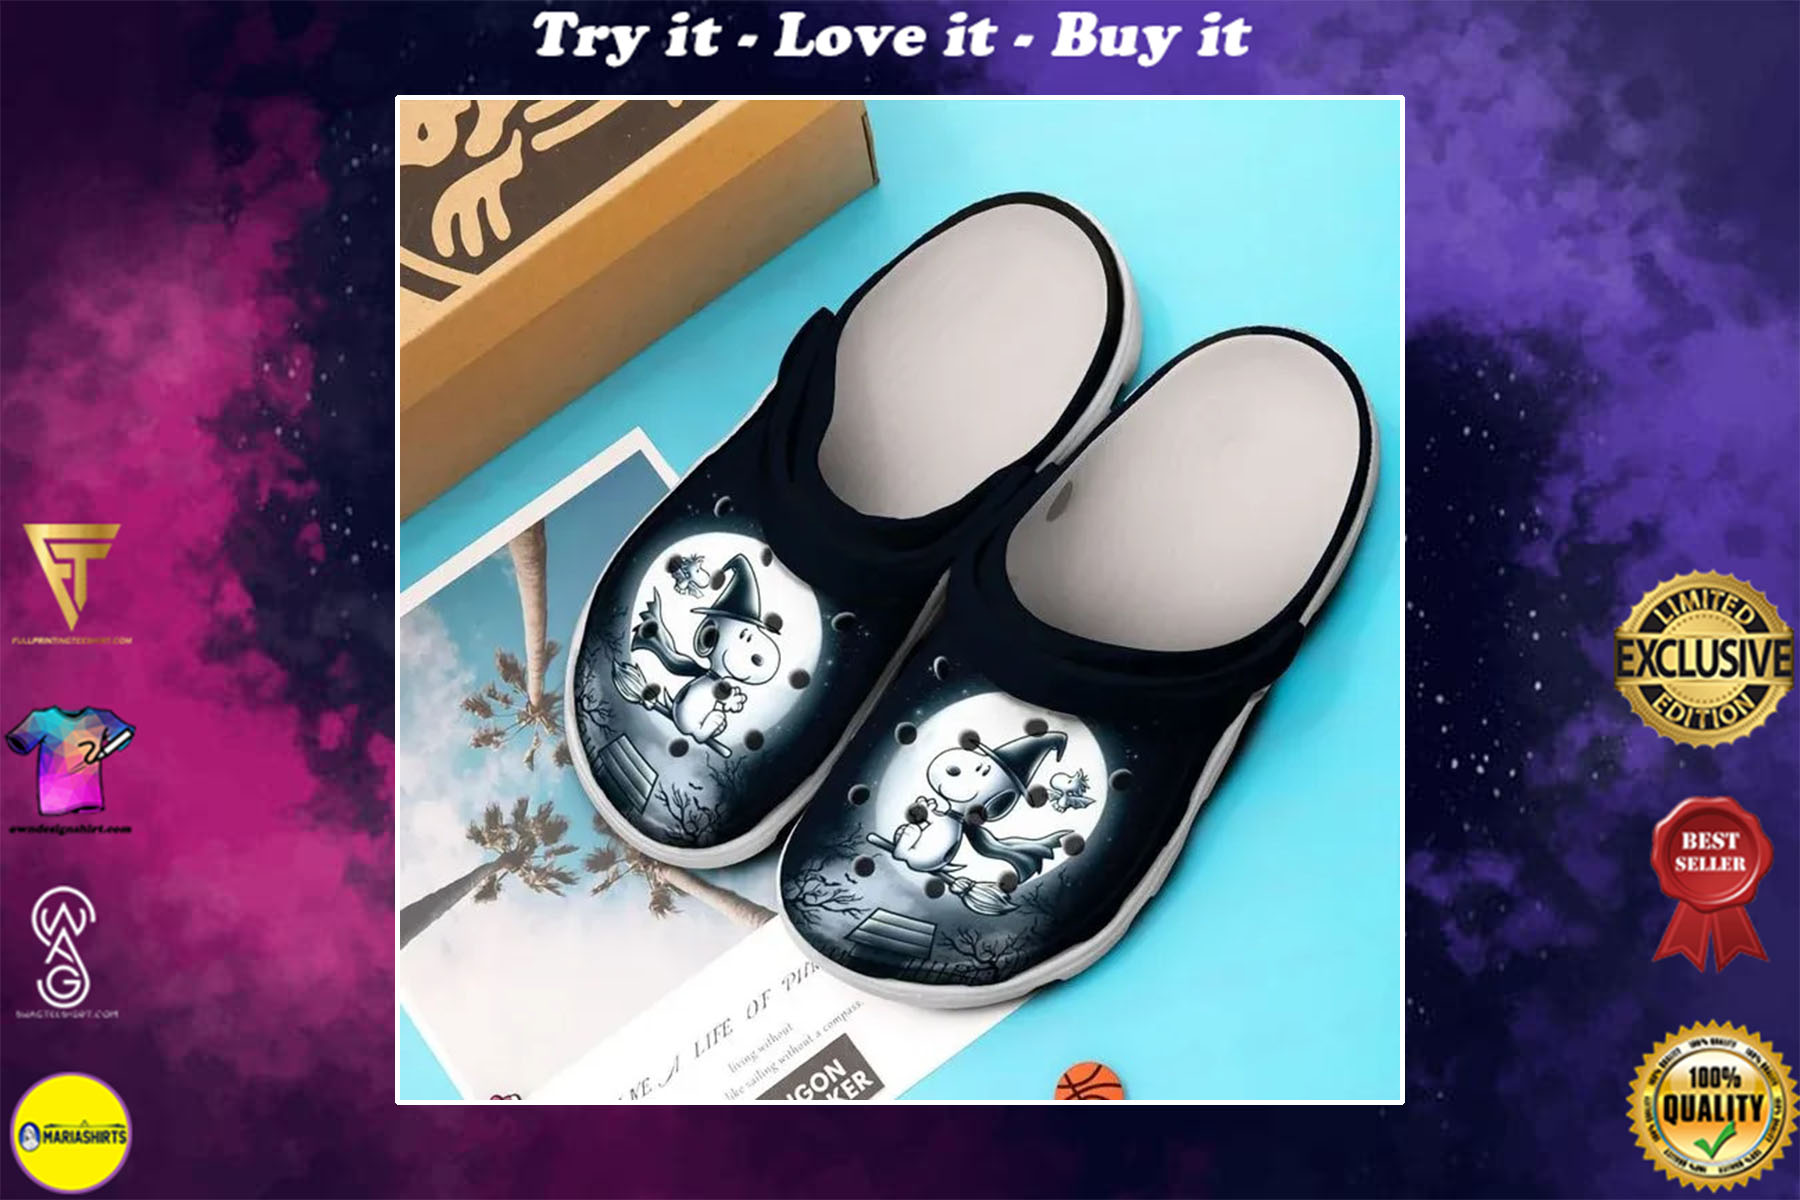 [special edition] halloween snoopy and charlie brown crocs shoes - maria